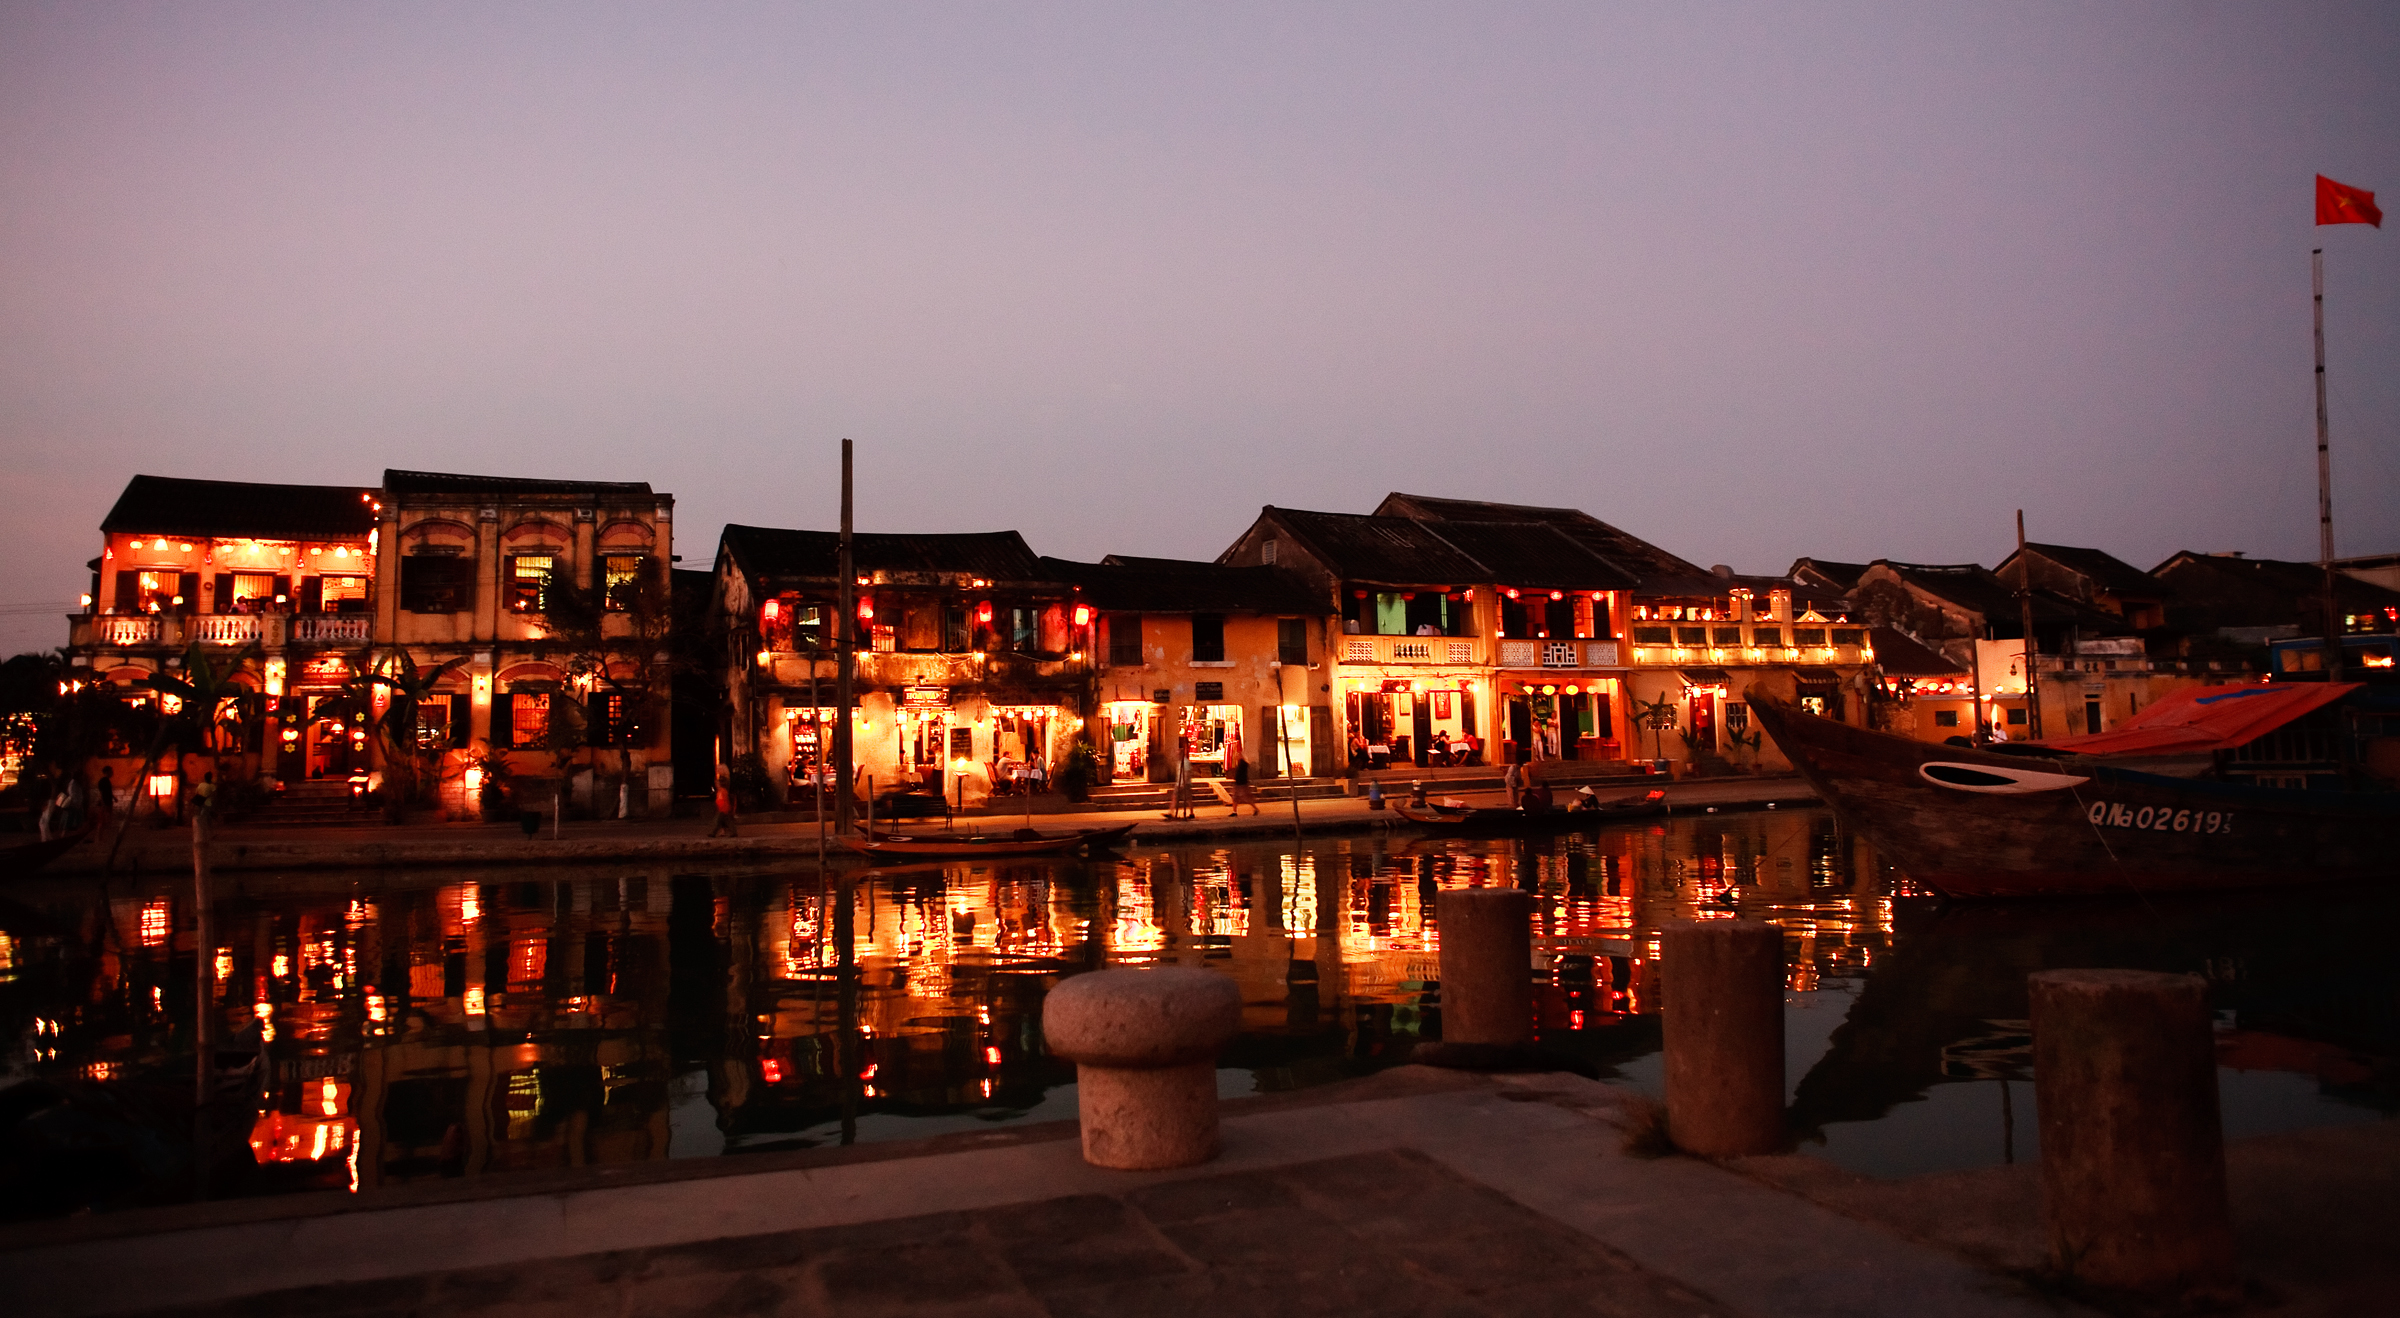 hoi-an-ancient-town-is-terrifically-beautiful-at-sunset-saigon-riders